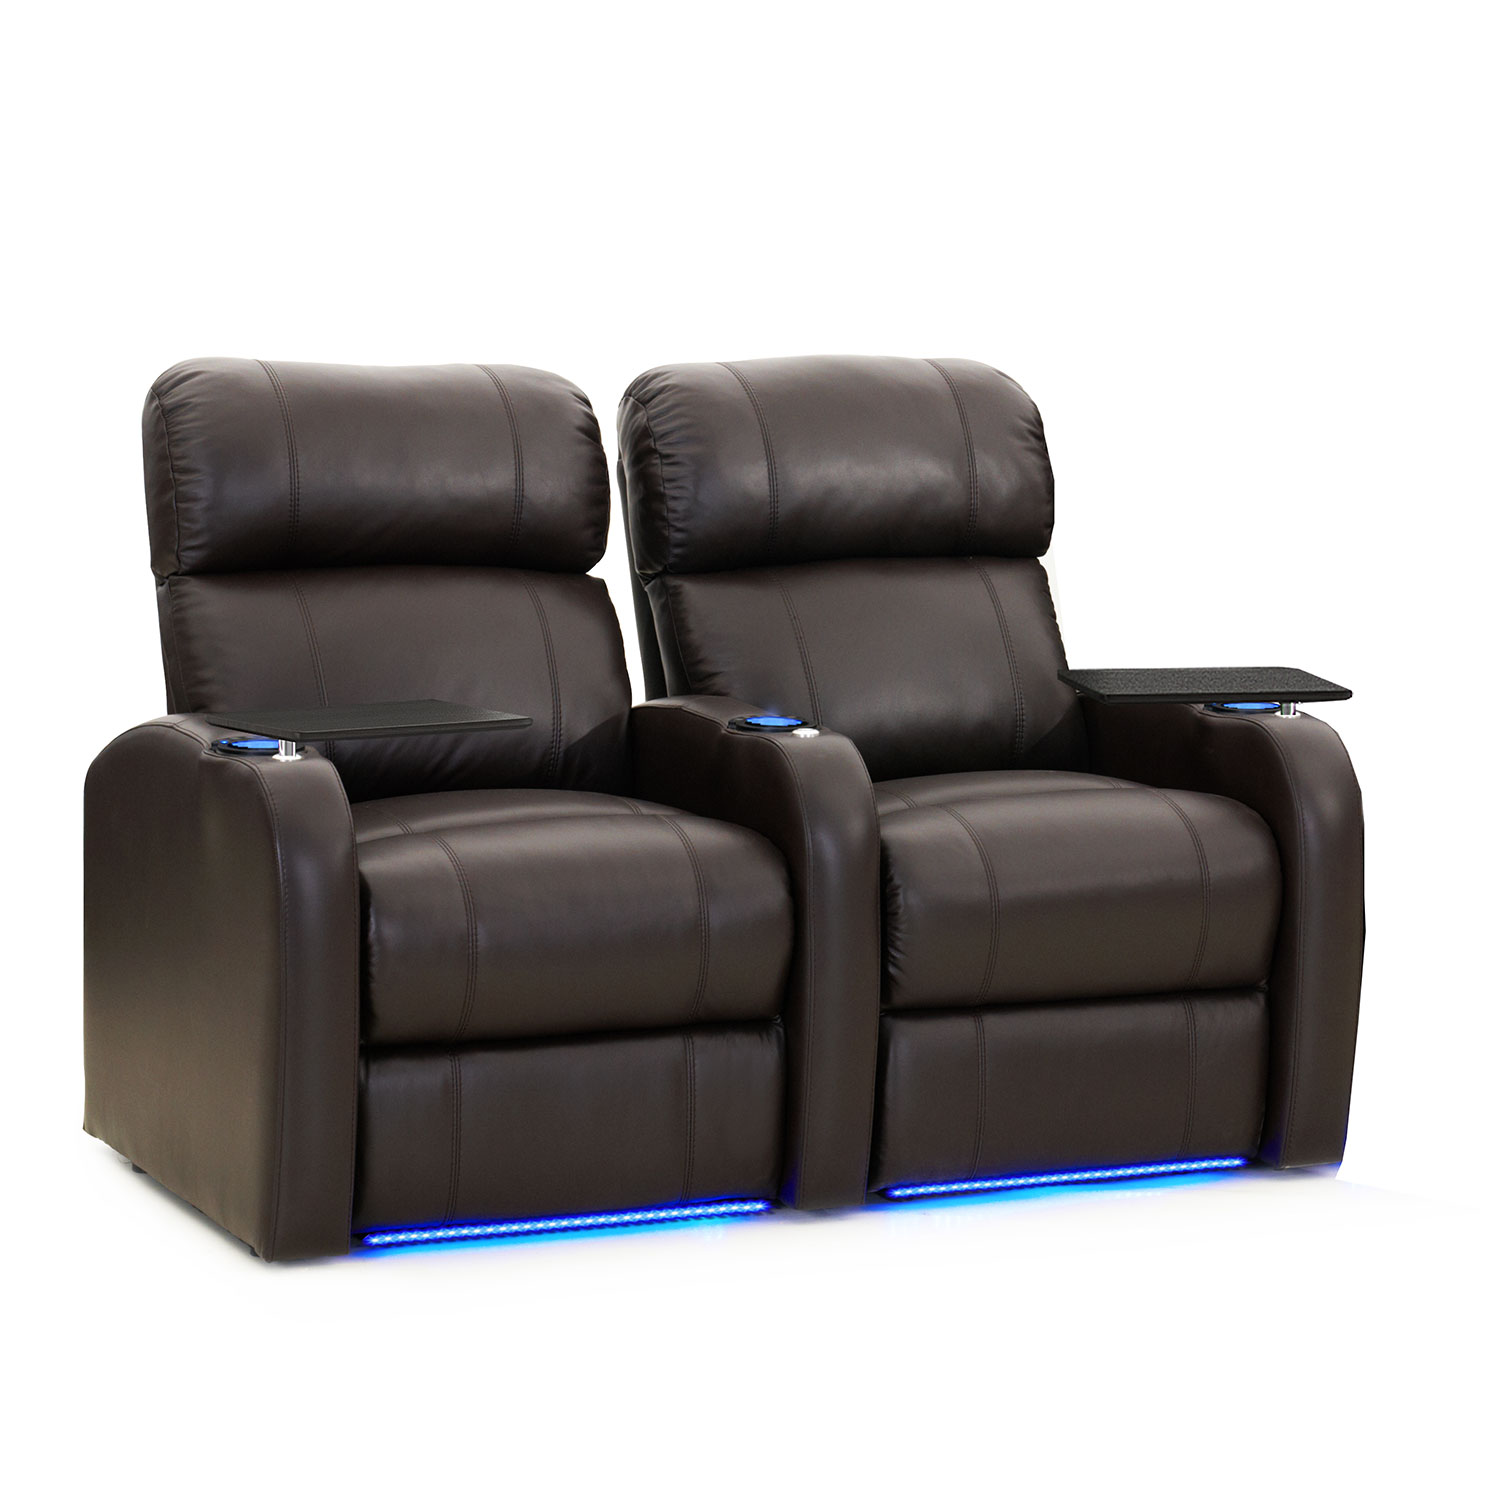 Home Theater Buying Tips: Tips To Select The Best Home Theatre Seating For Your Home